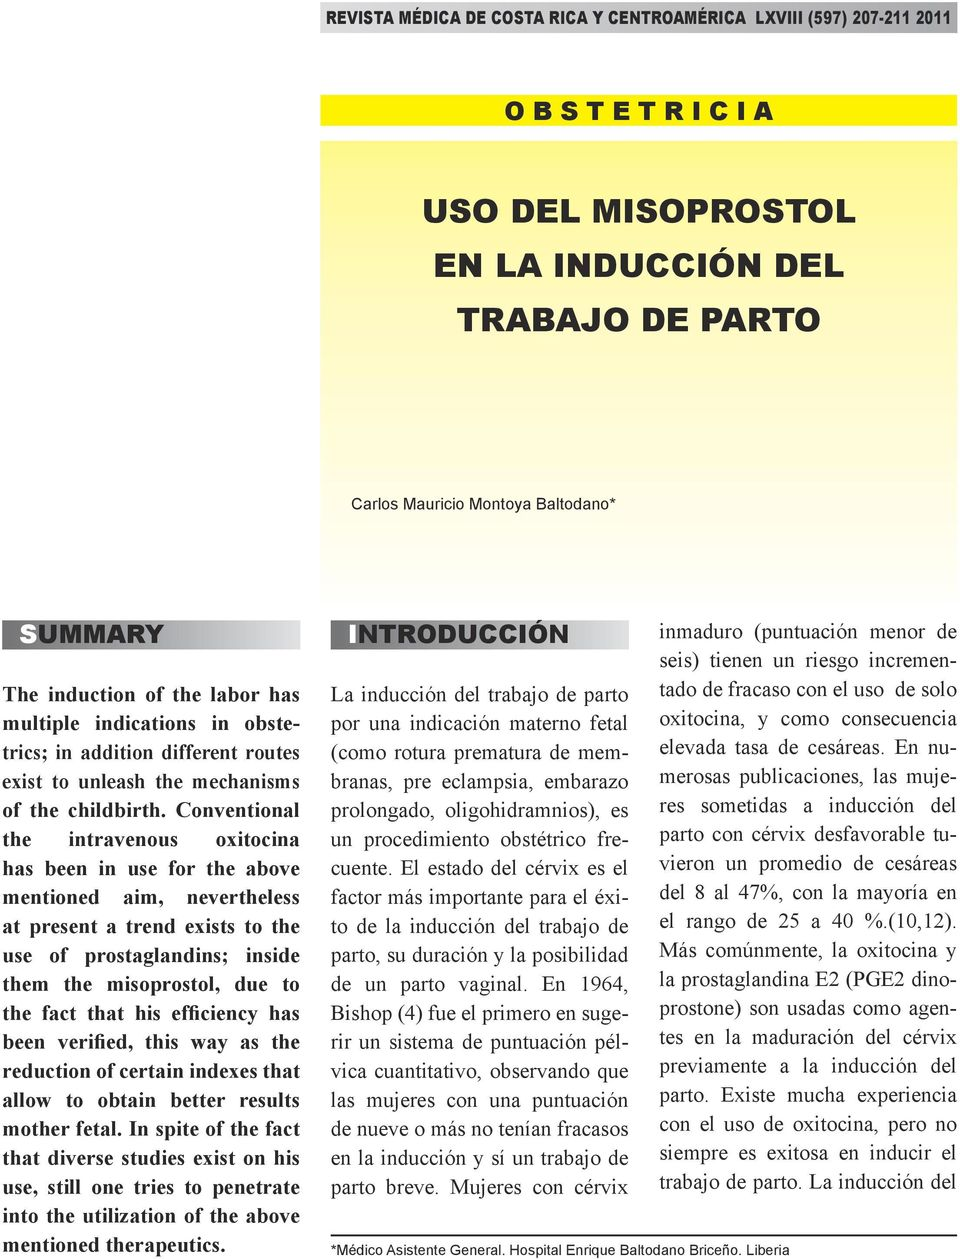 Conventional the intravenous oxitocina has been in use for the above mentioned aim, nevertheless at present a trend exists to the use of prostaglandins; inside them the misoprostol, due to the fact